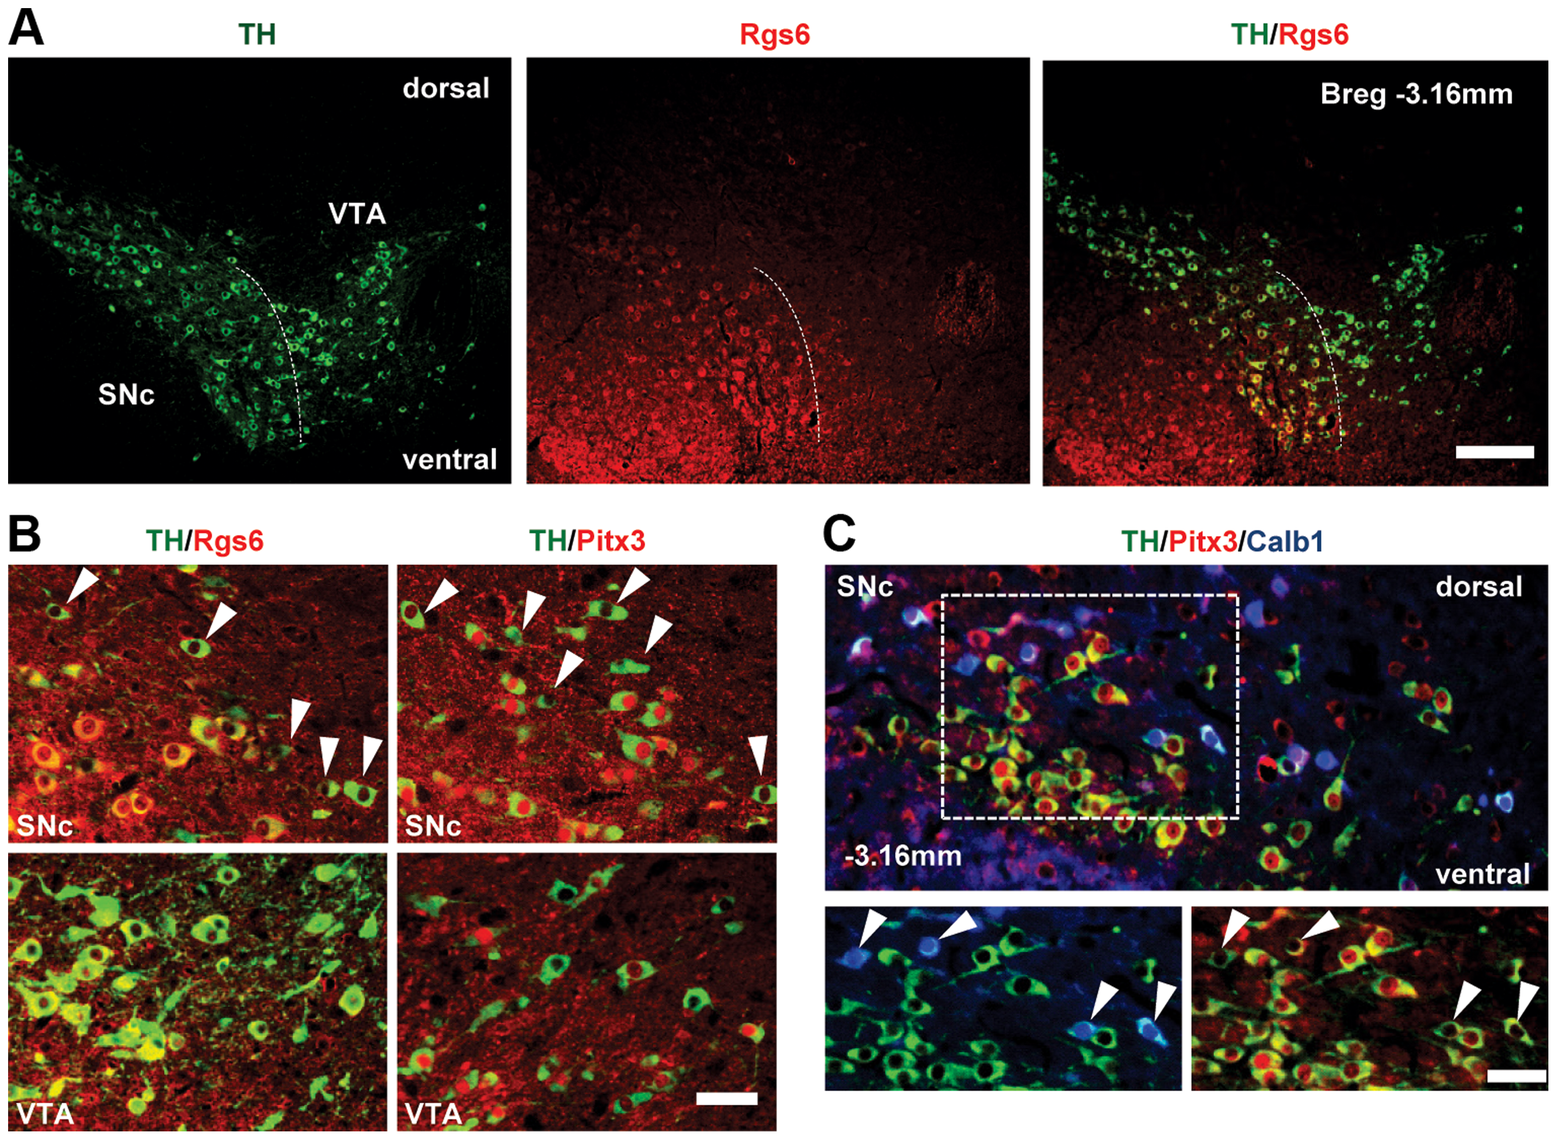 Restricted expression of Rgs6 in Pitx3-positive (Pitx3+) dopaminergic neurons of ventral SNc.